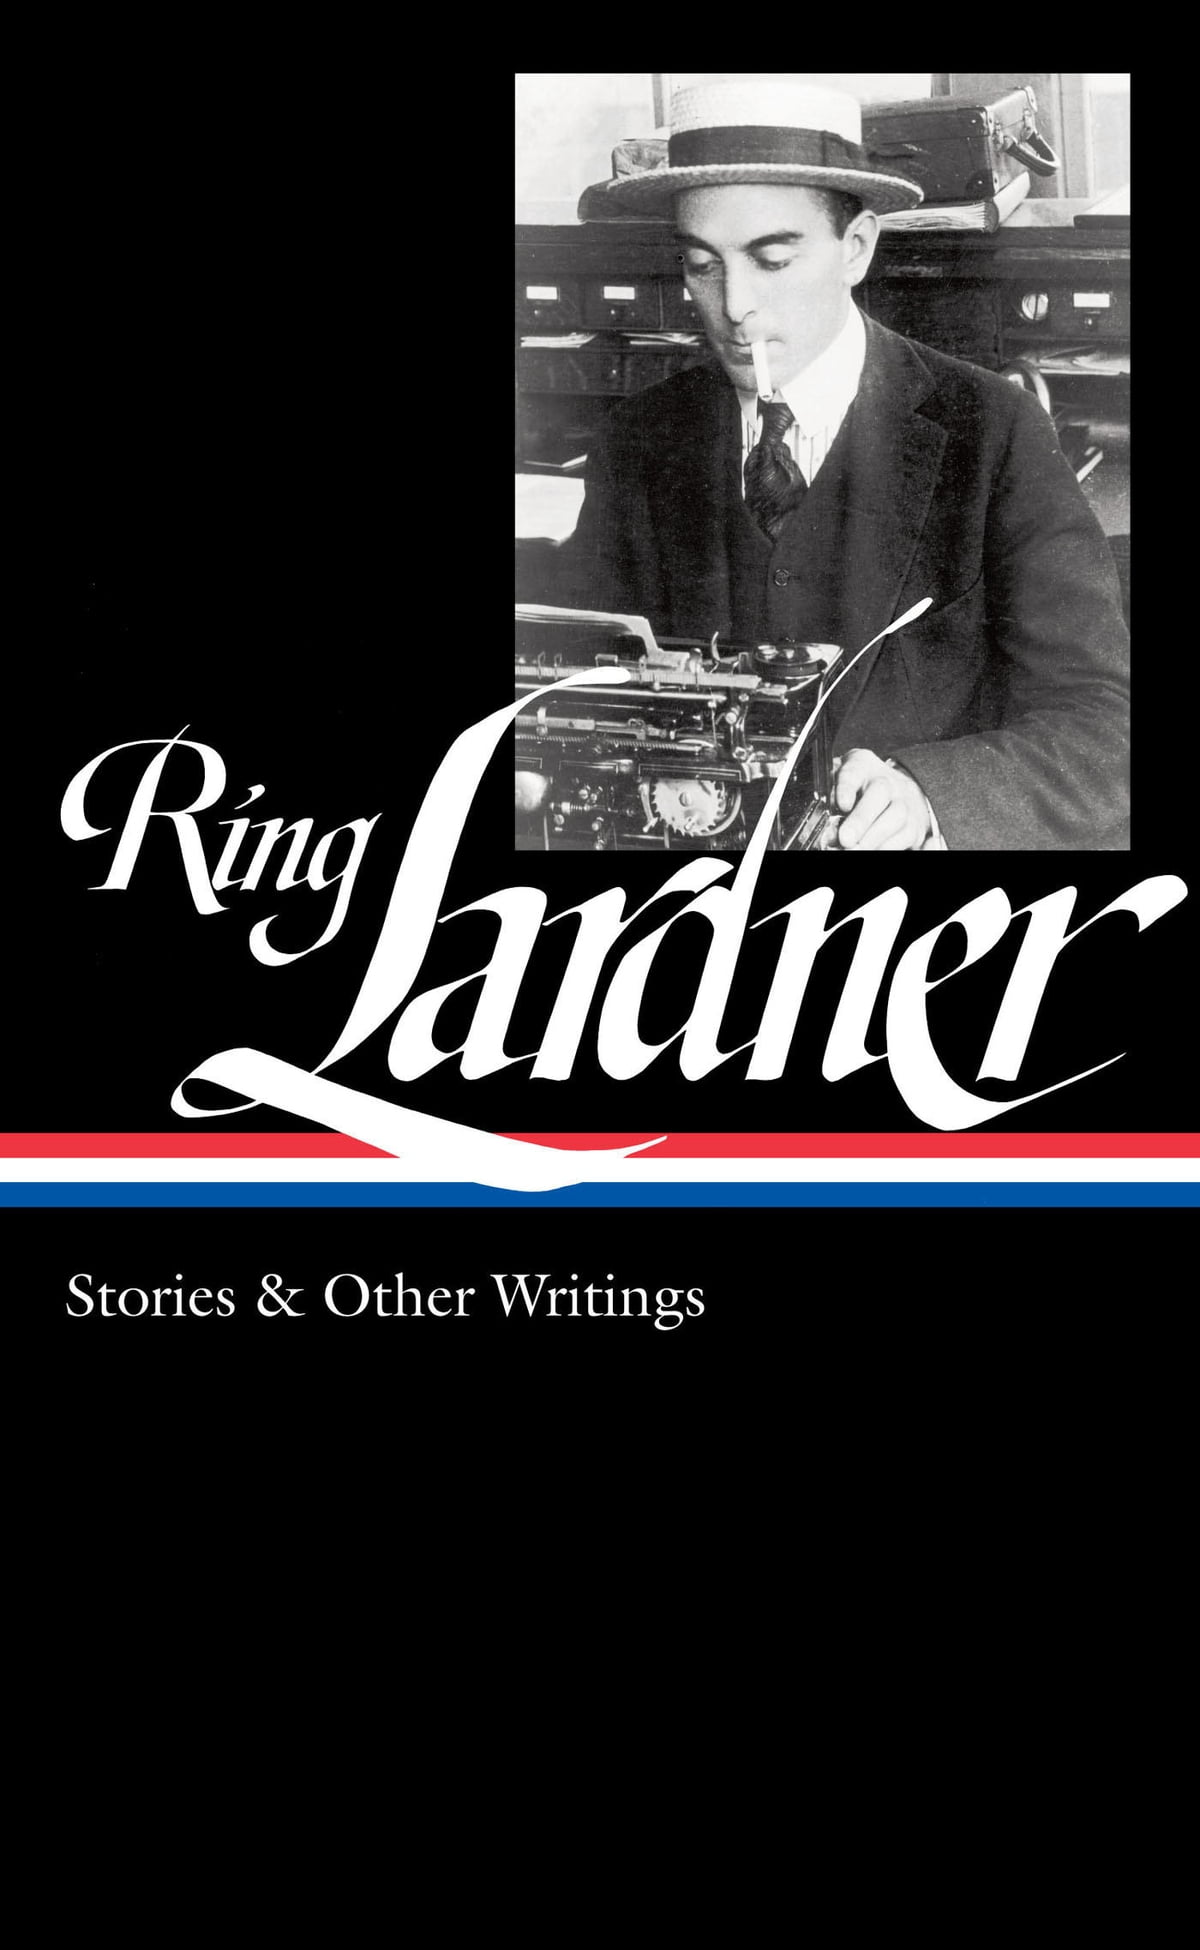 Ring Lardner Stories Other Writings Loa 244 Ebook By Ring